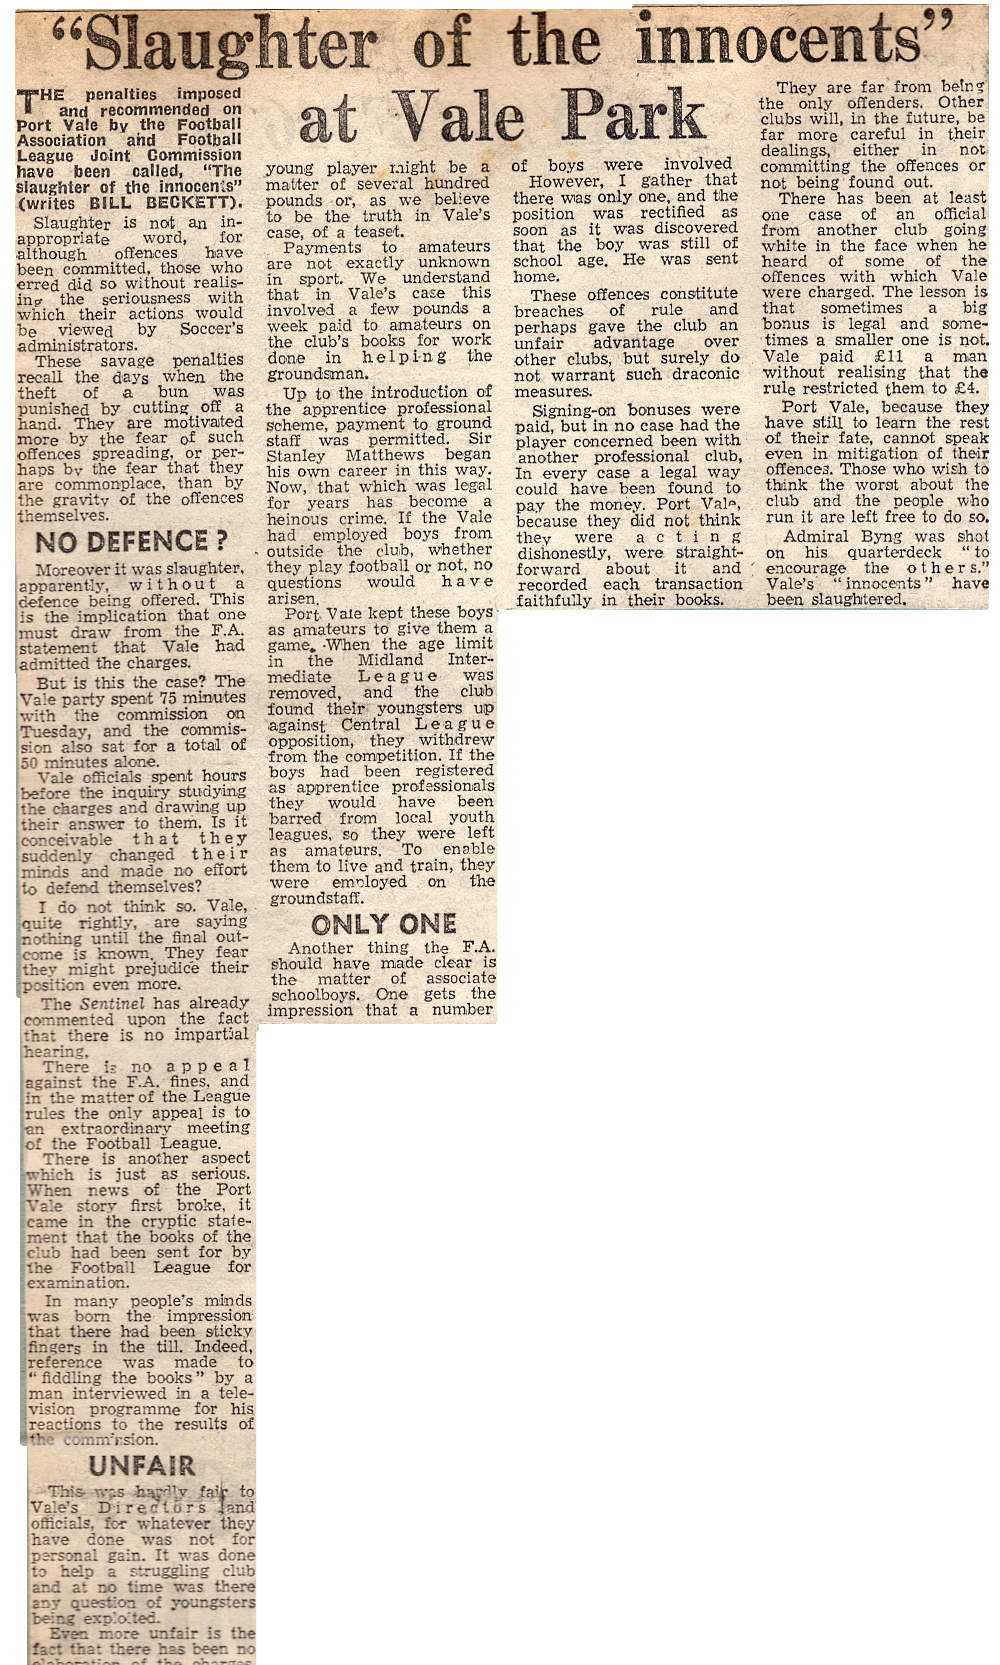 Slaughter of the innocents - press clipping